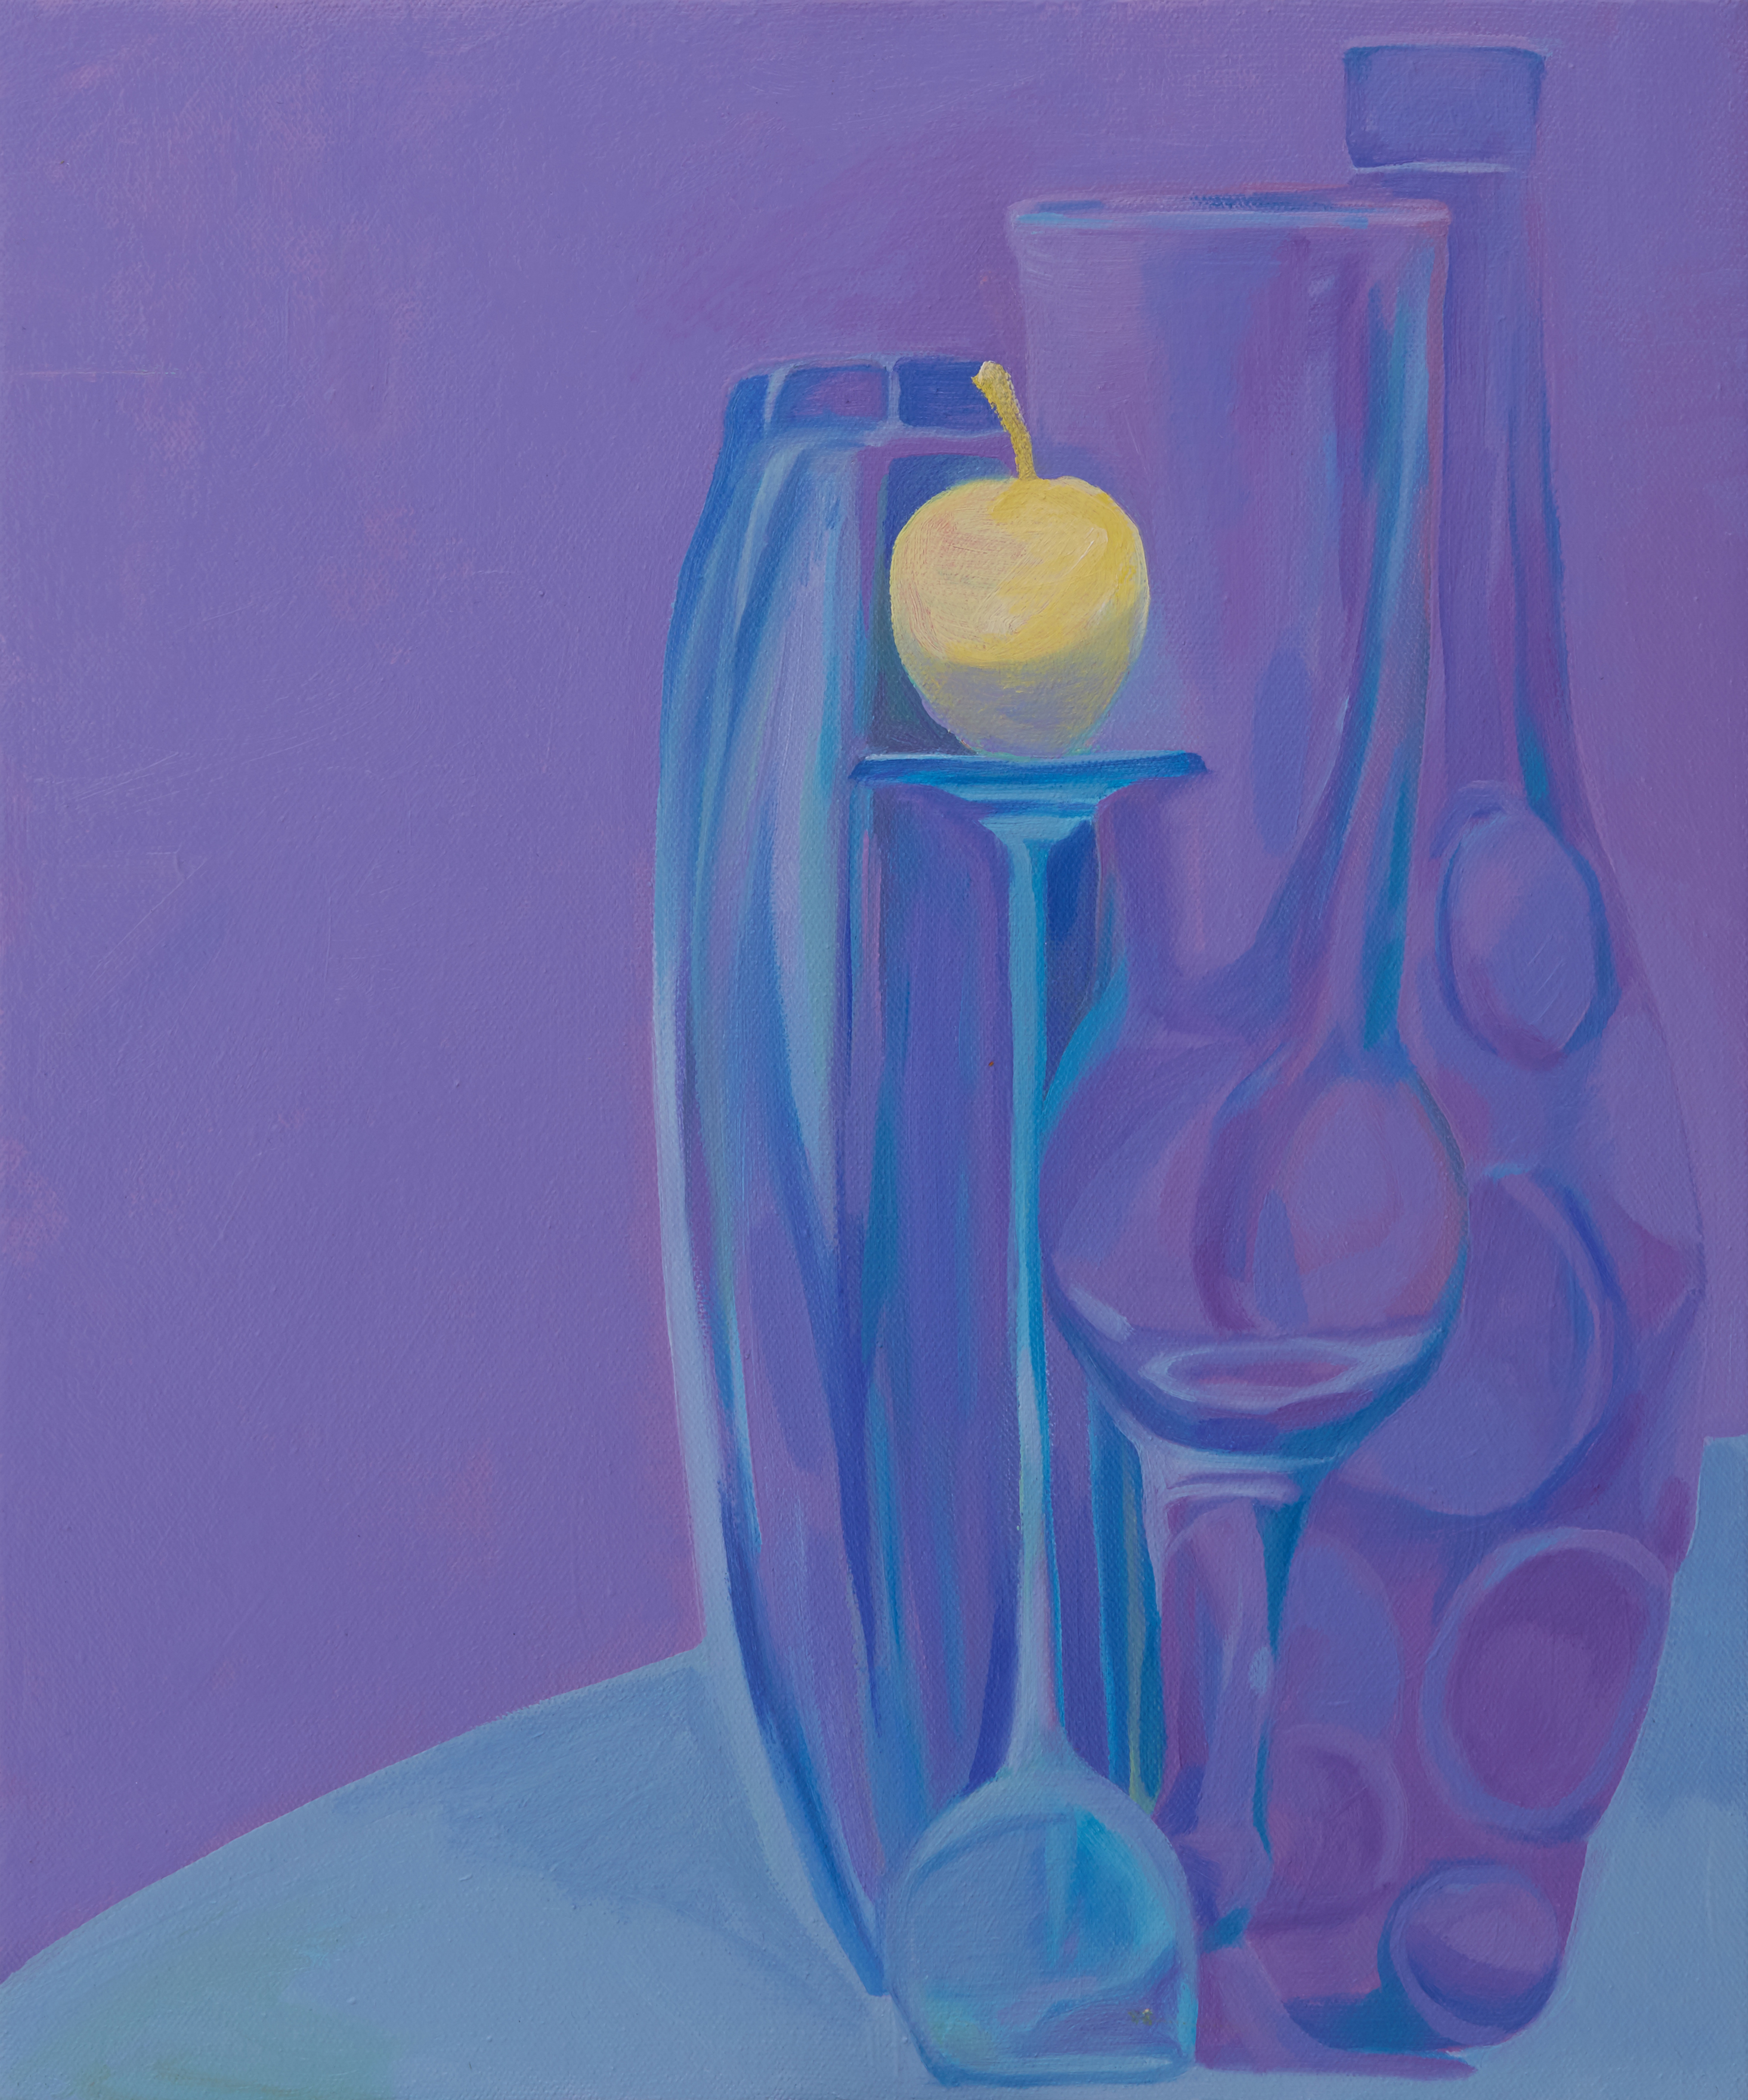 Still life in Violet and Yellow